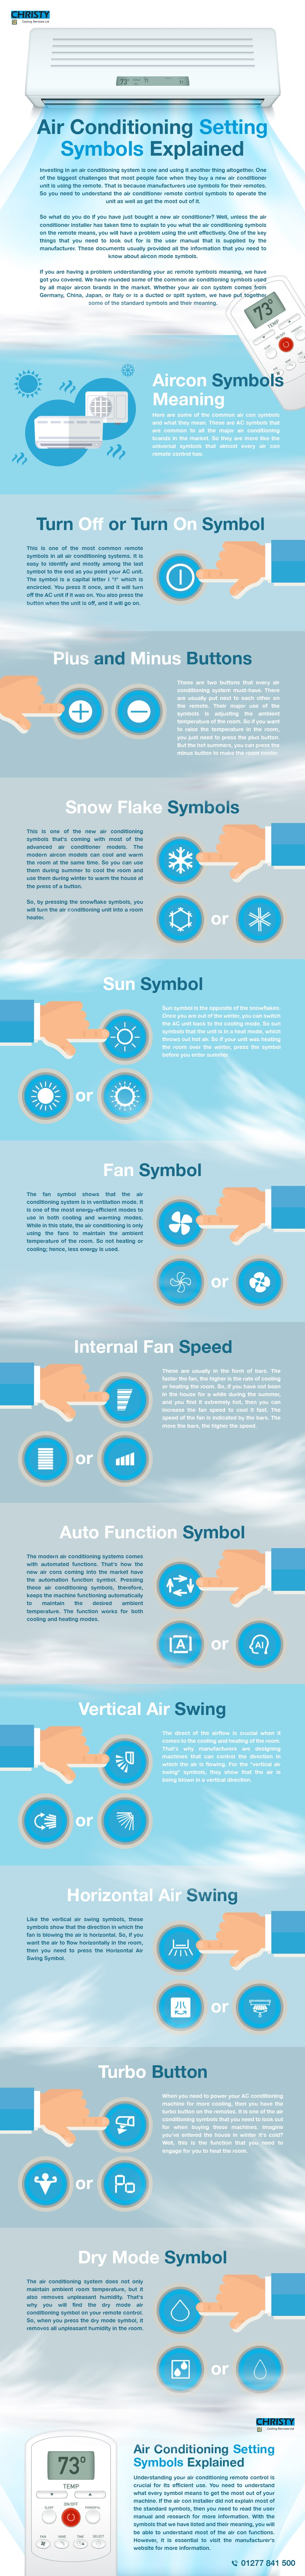 One-Stop Guide to Reading Symbols on Air Conditioner Remotes - Infographic